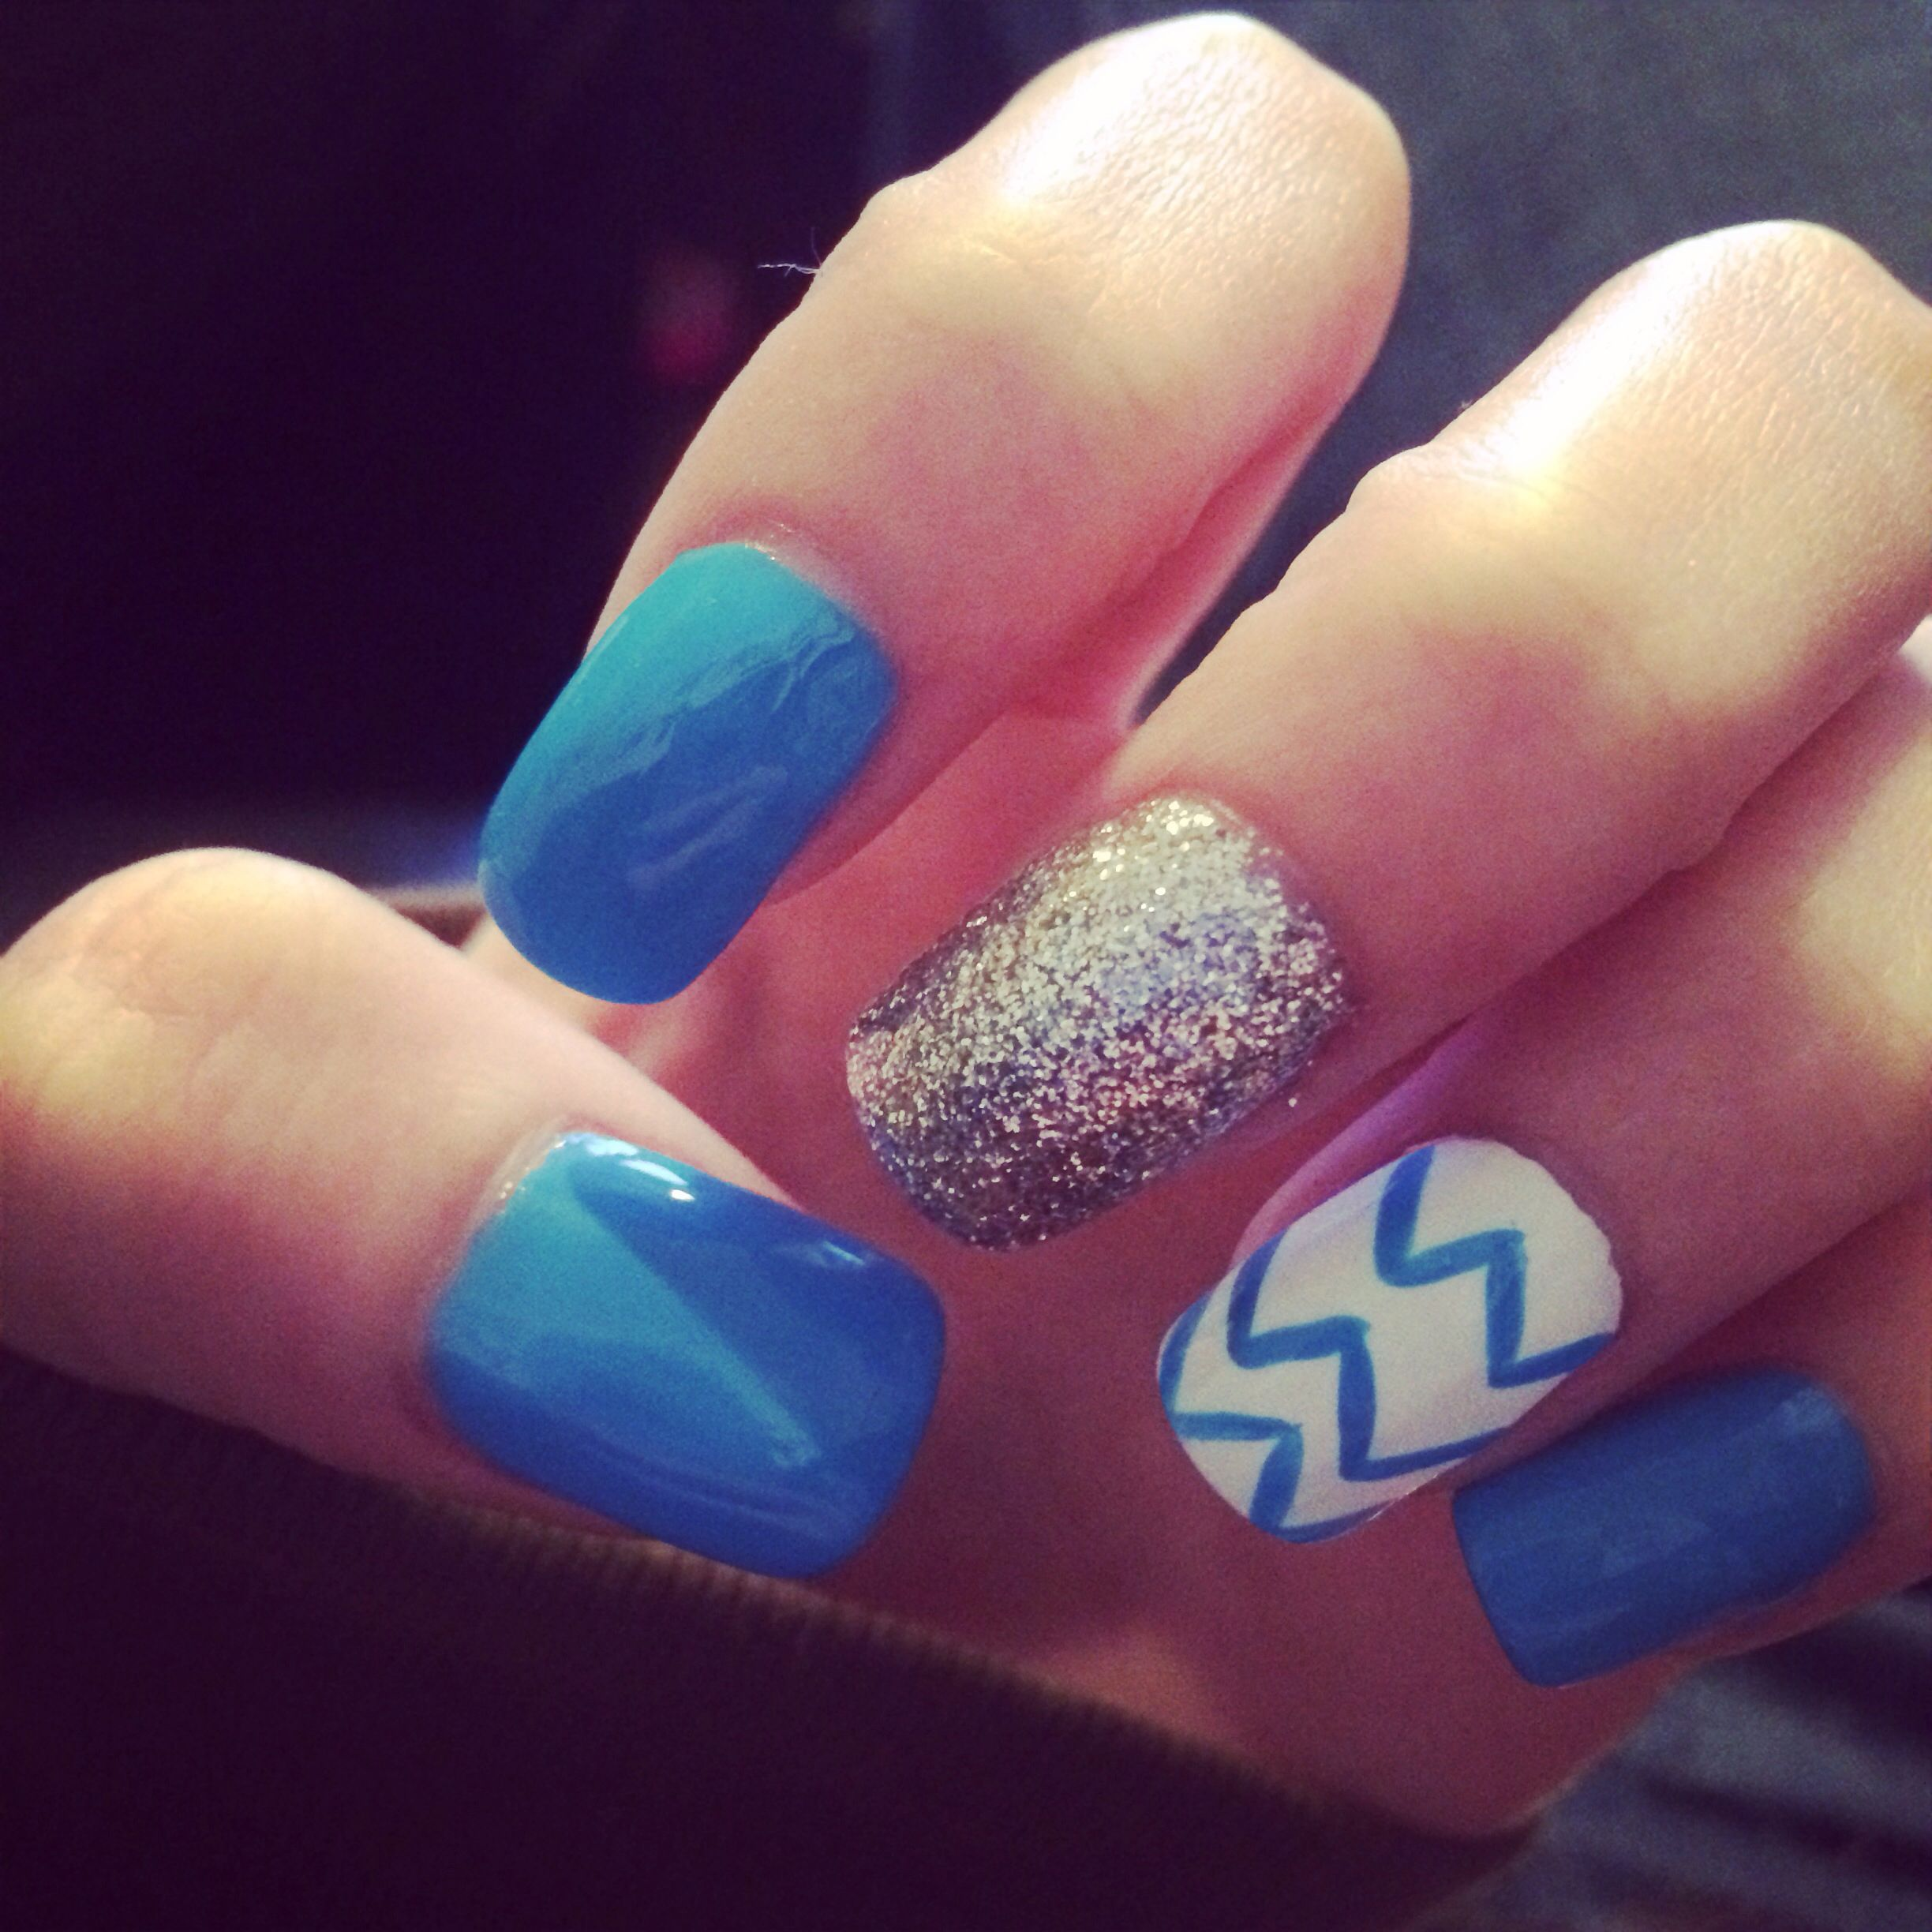 new nails light blue nails white with light blue zigzag